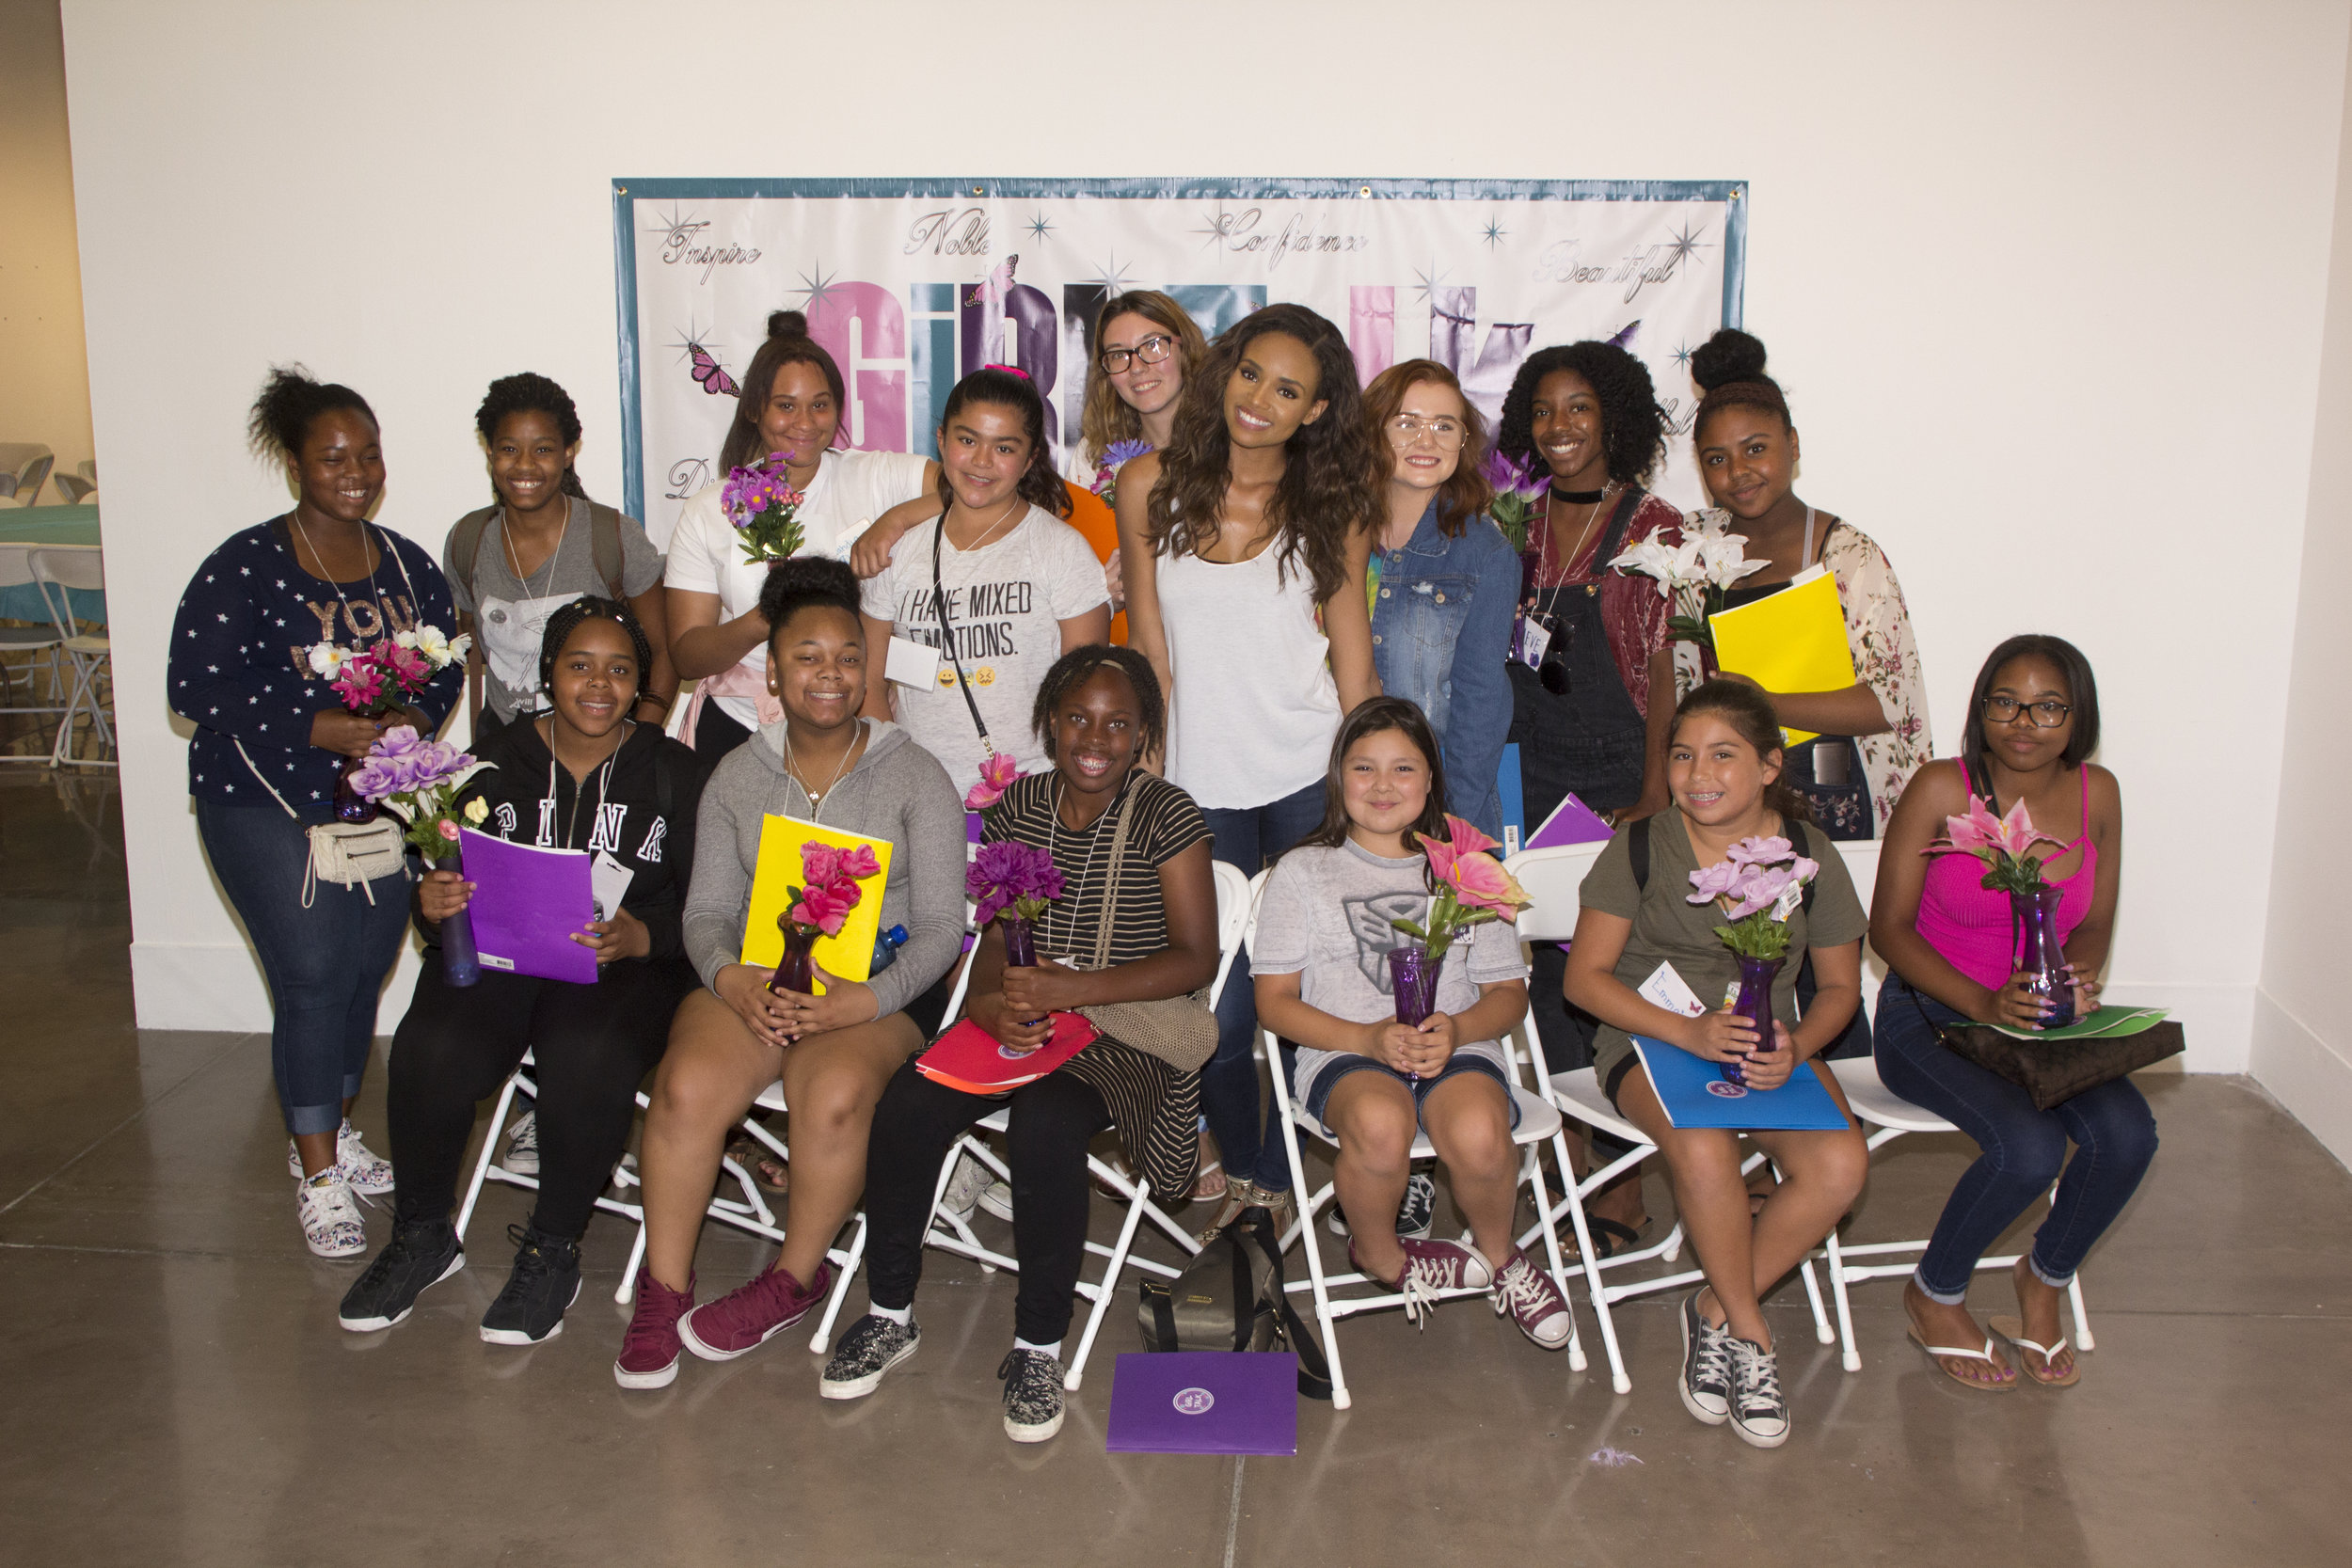 Girl Talk With Meagan! - This was a private exclusive class for a few lucky ladies who got to sit down and ask Meagan about acting and modeling.